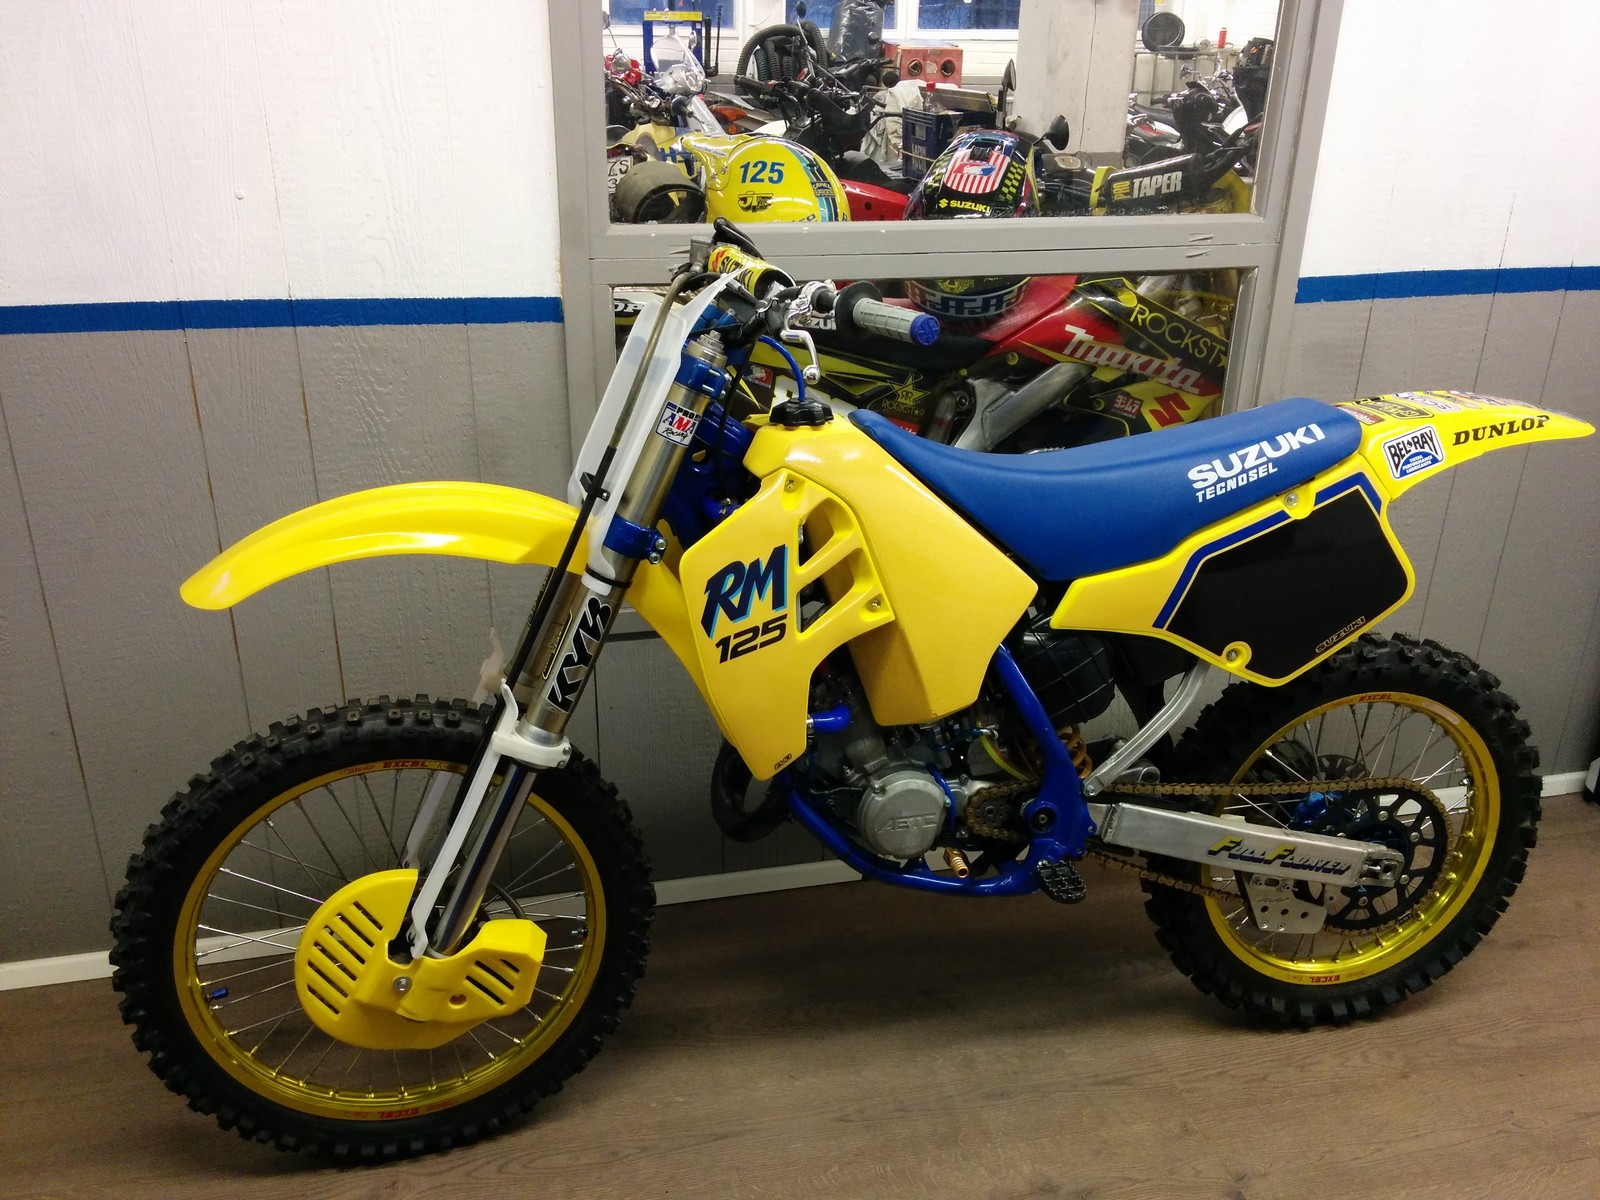 best sellers suzuki rm125 service manual Array - suzuki dirt bike 250 rm  manual ebook rh suzuki dirt bike 250 rm manual